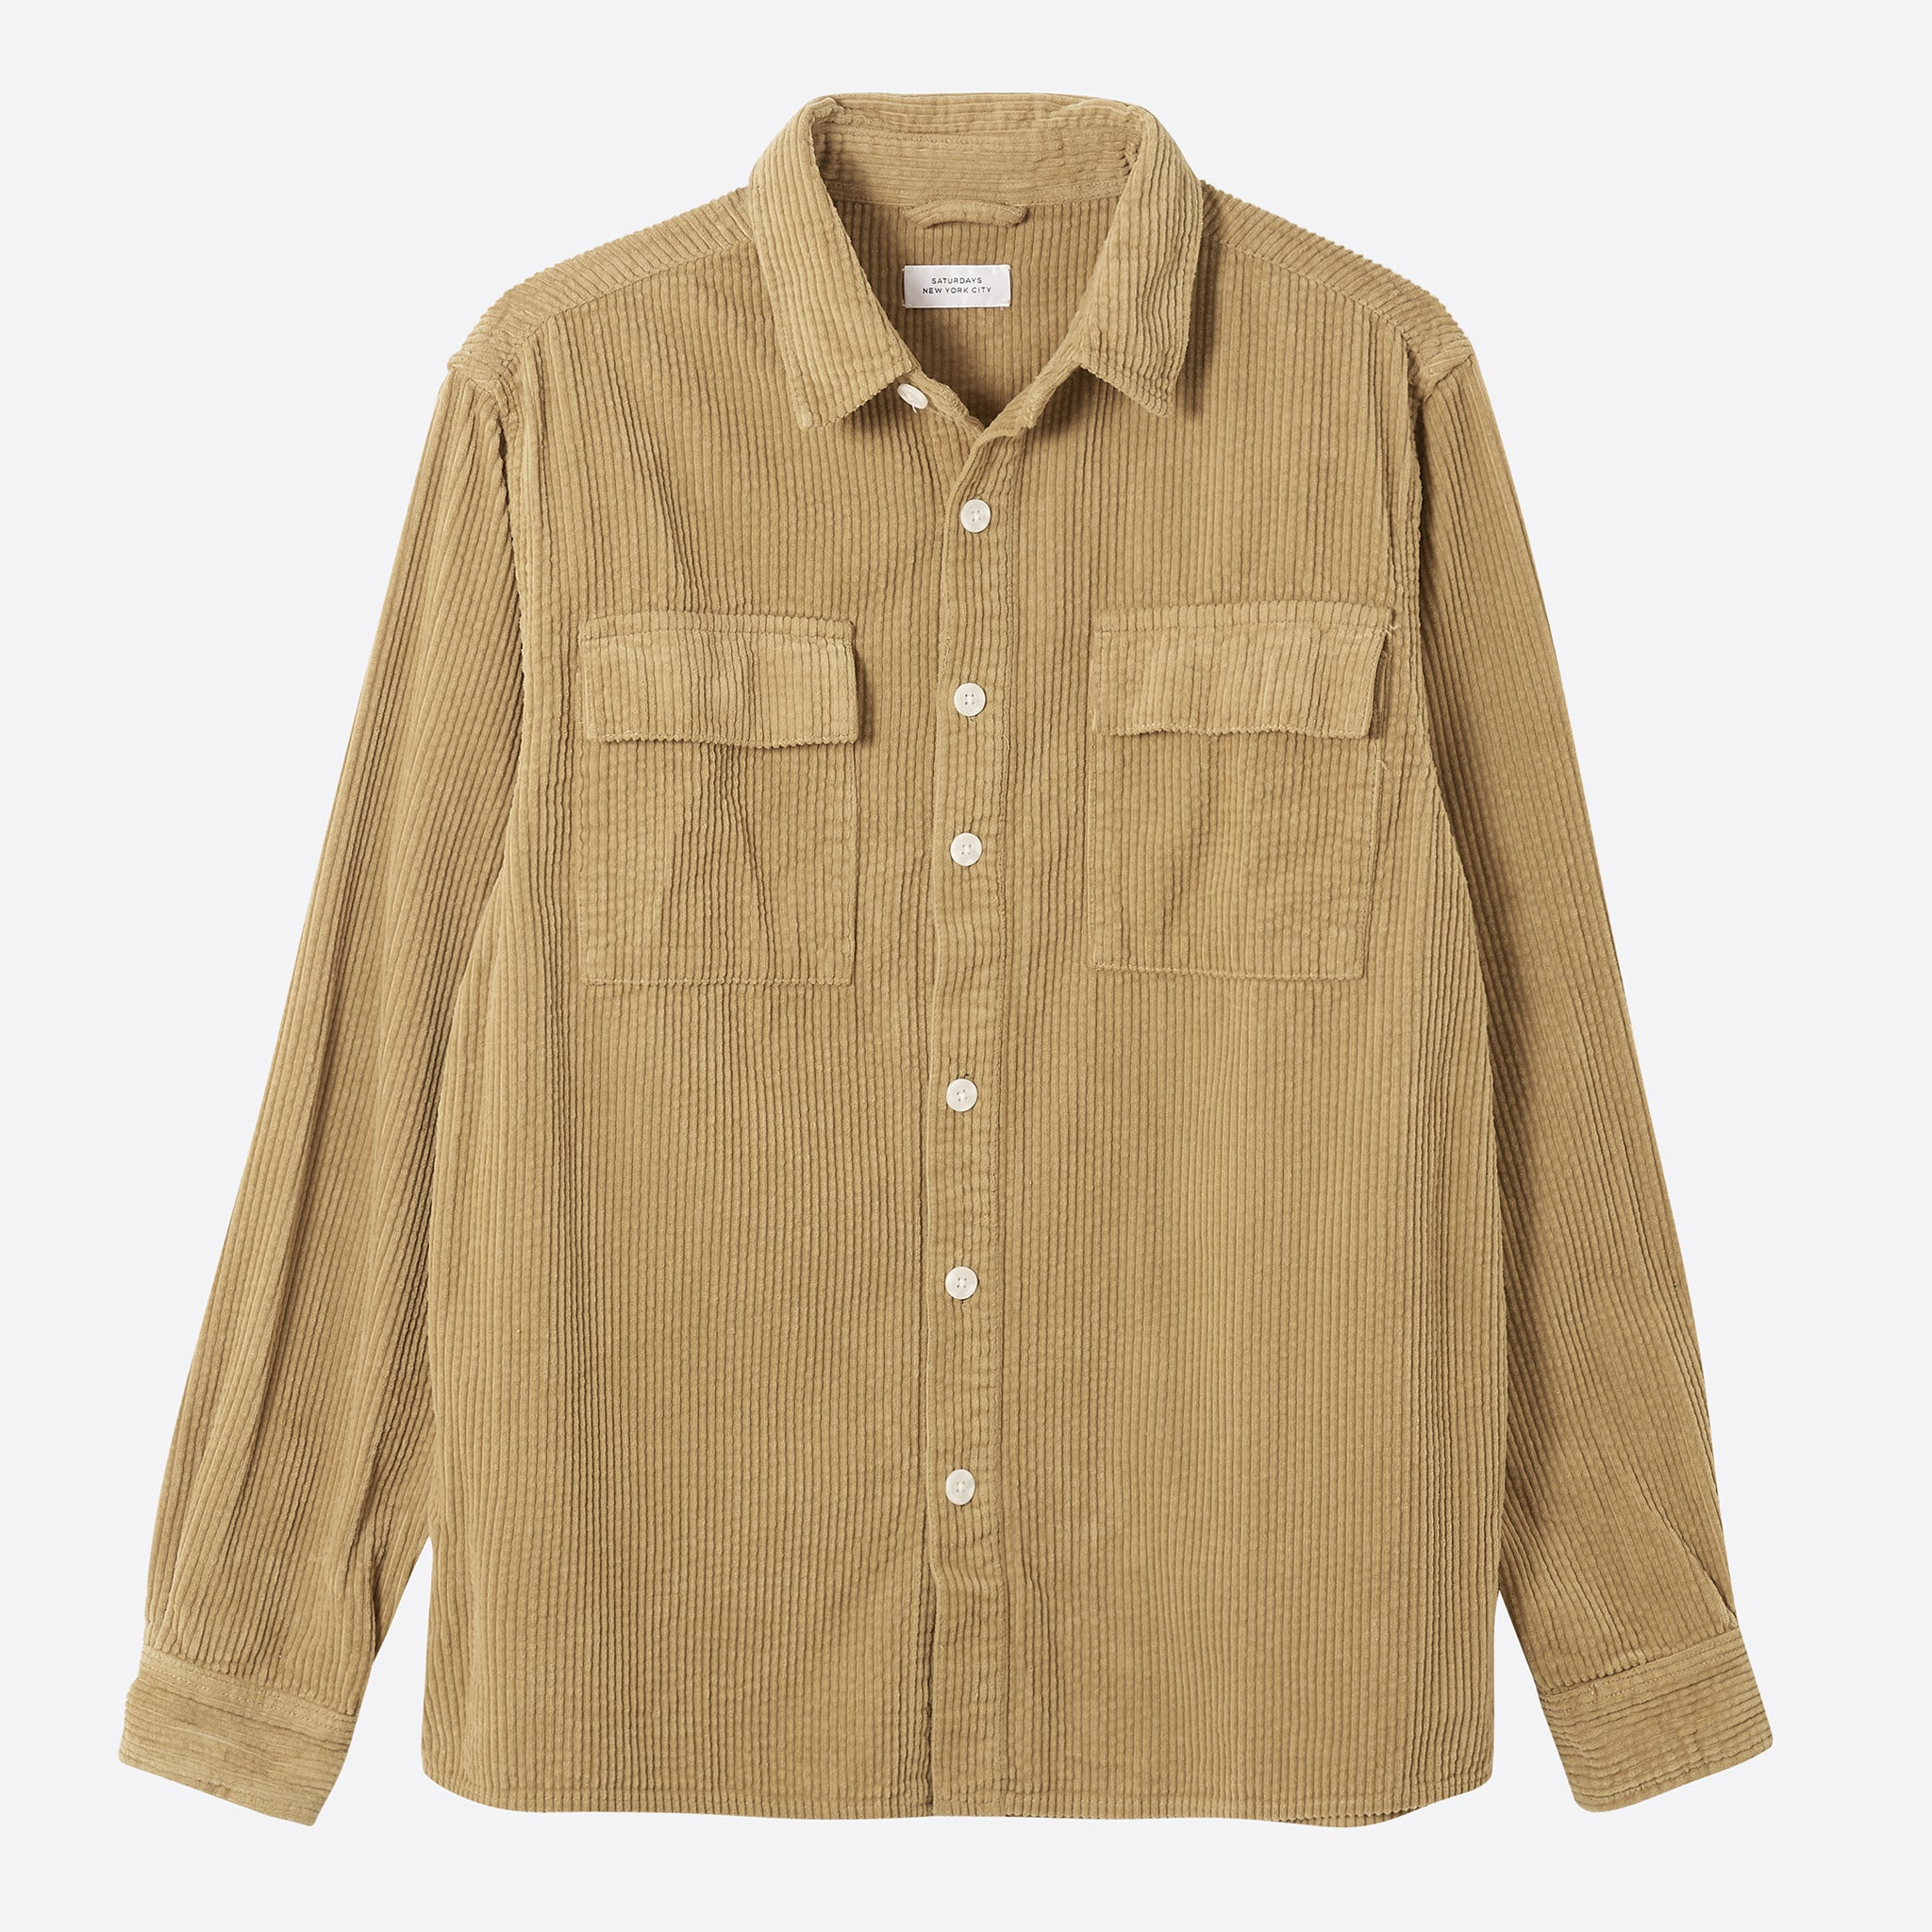 Saturdays NYC Magnus Heavy Cord Shirt in British Khaki